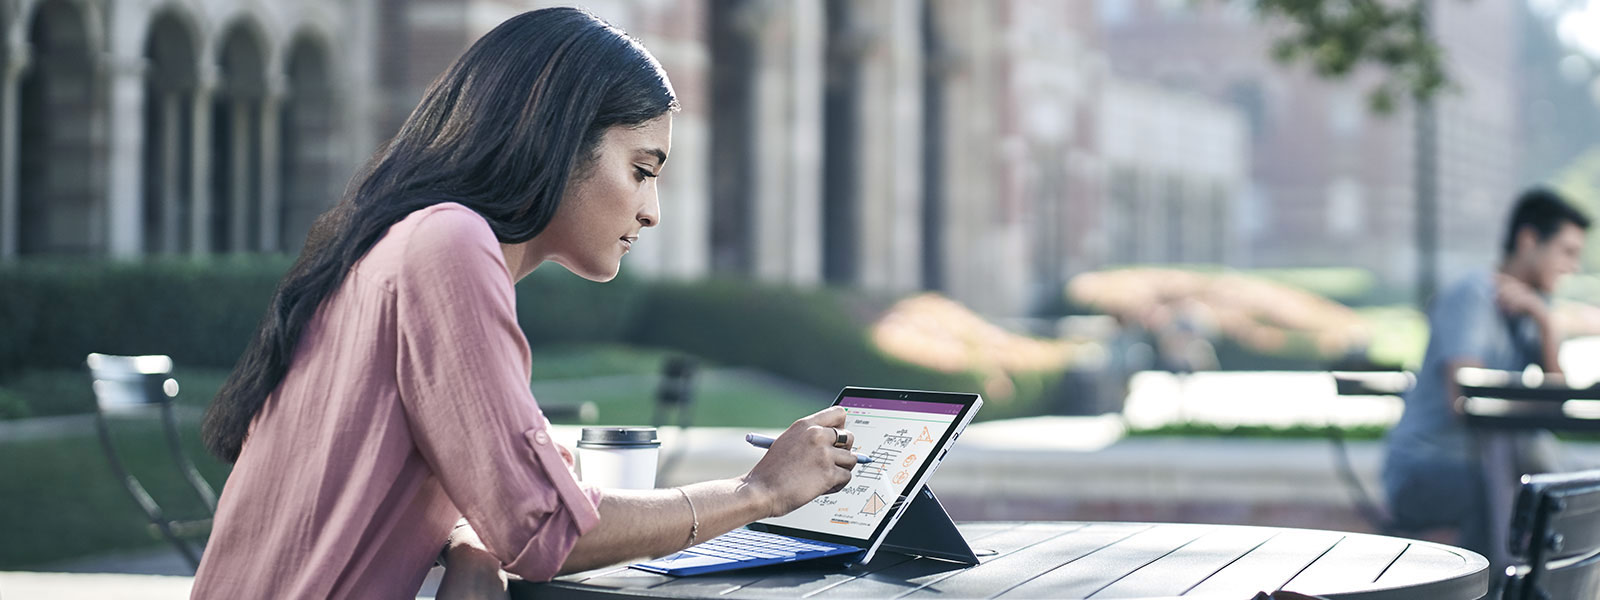 Woman using Surface Pen to draw on Surface Studio screen while pinch-zooming with her other hand